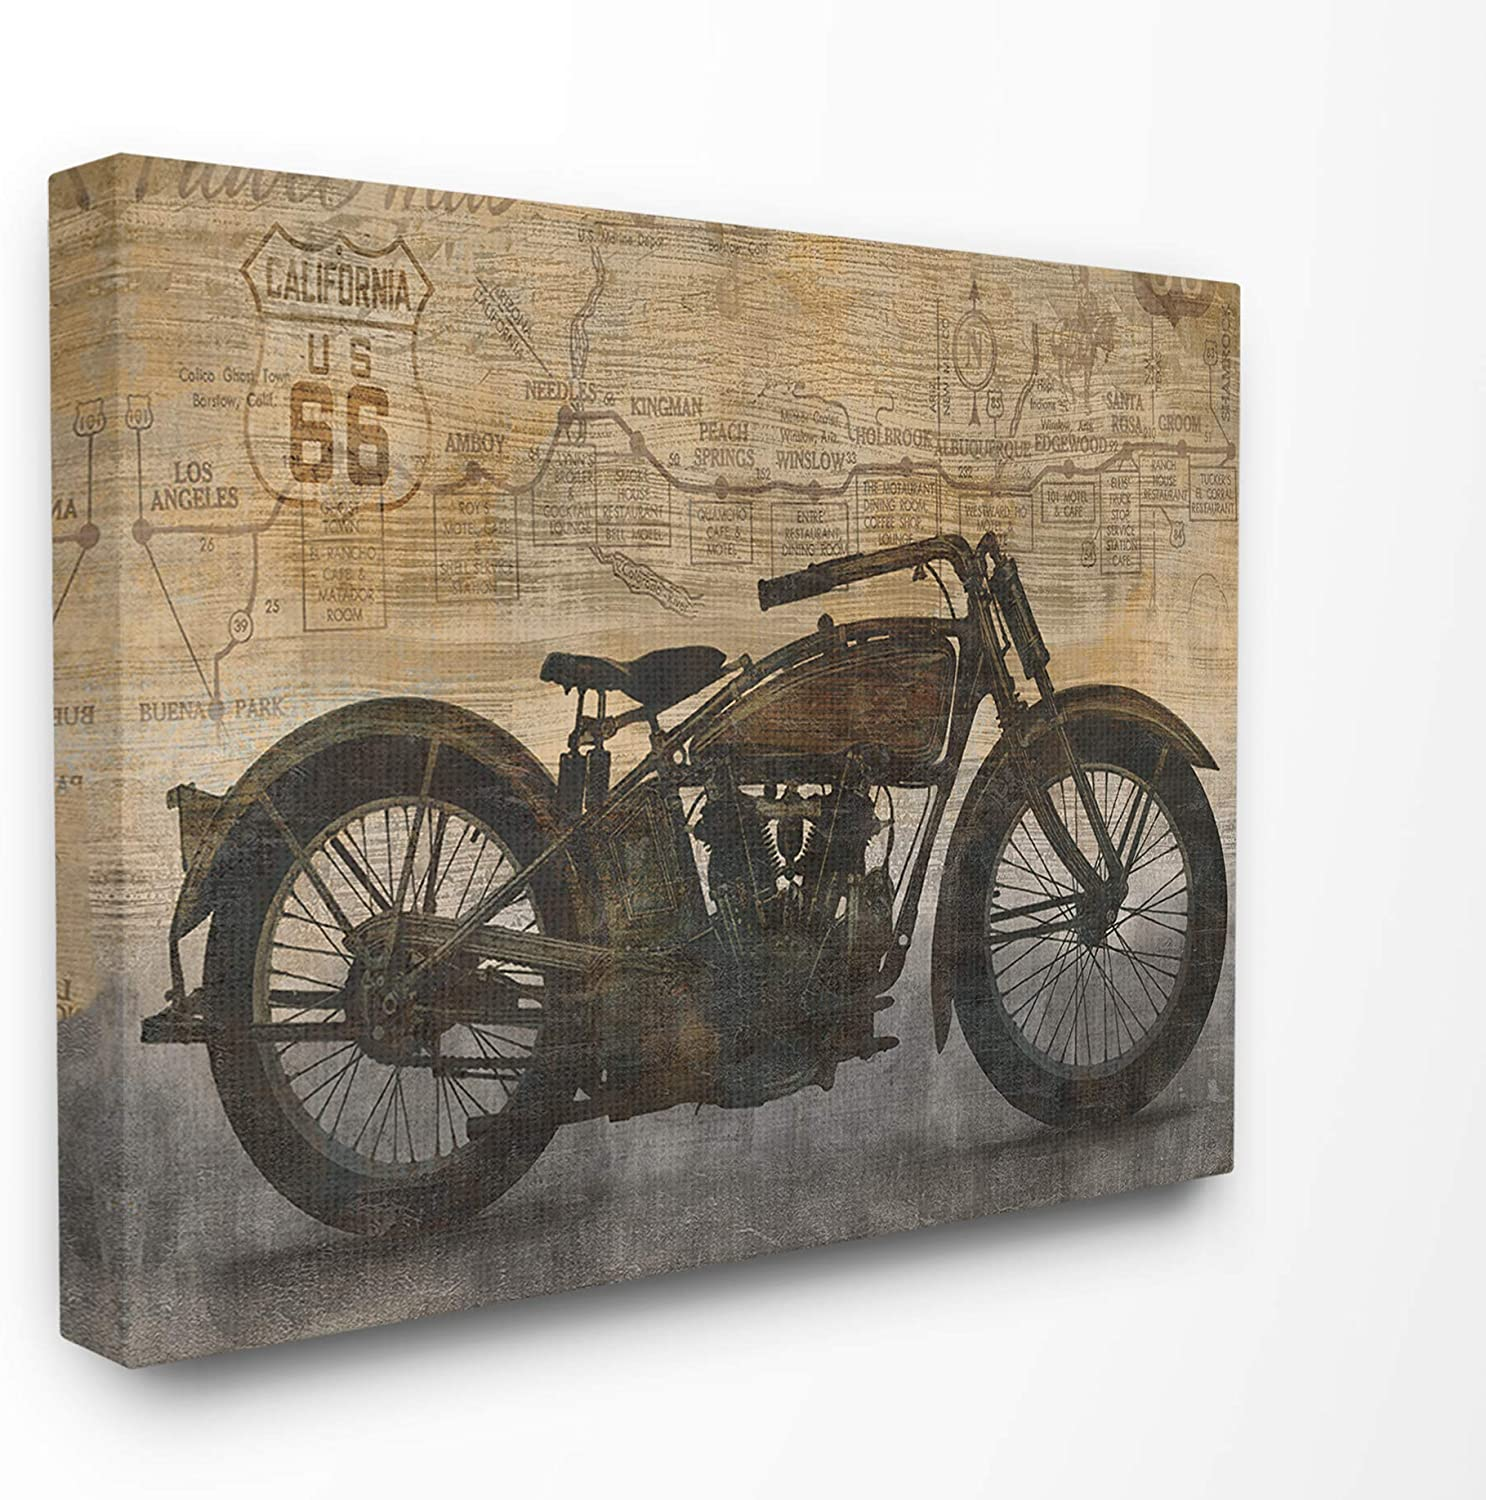 The Stupell Home Décor Collection Tan and Black Sepia Motorcycle with Faded Road Map Texture Stretched Canvas Wall Art, 24 x 30, Multi-Color